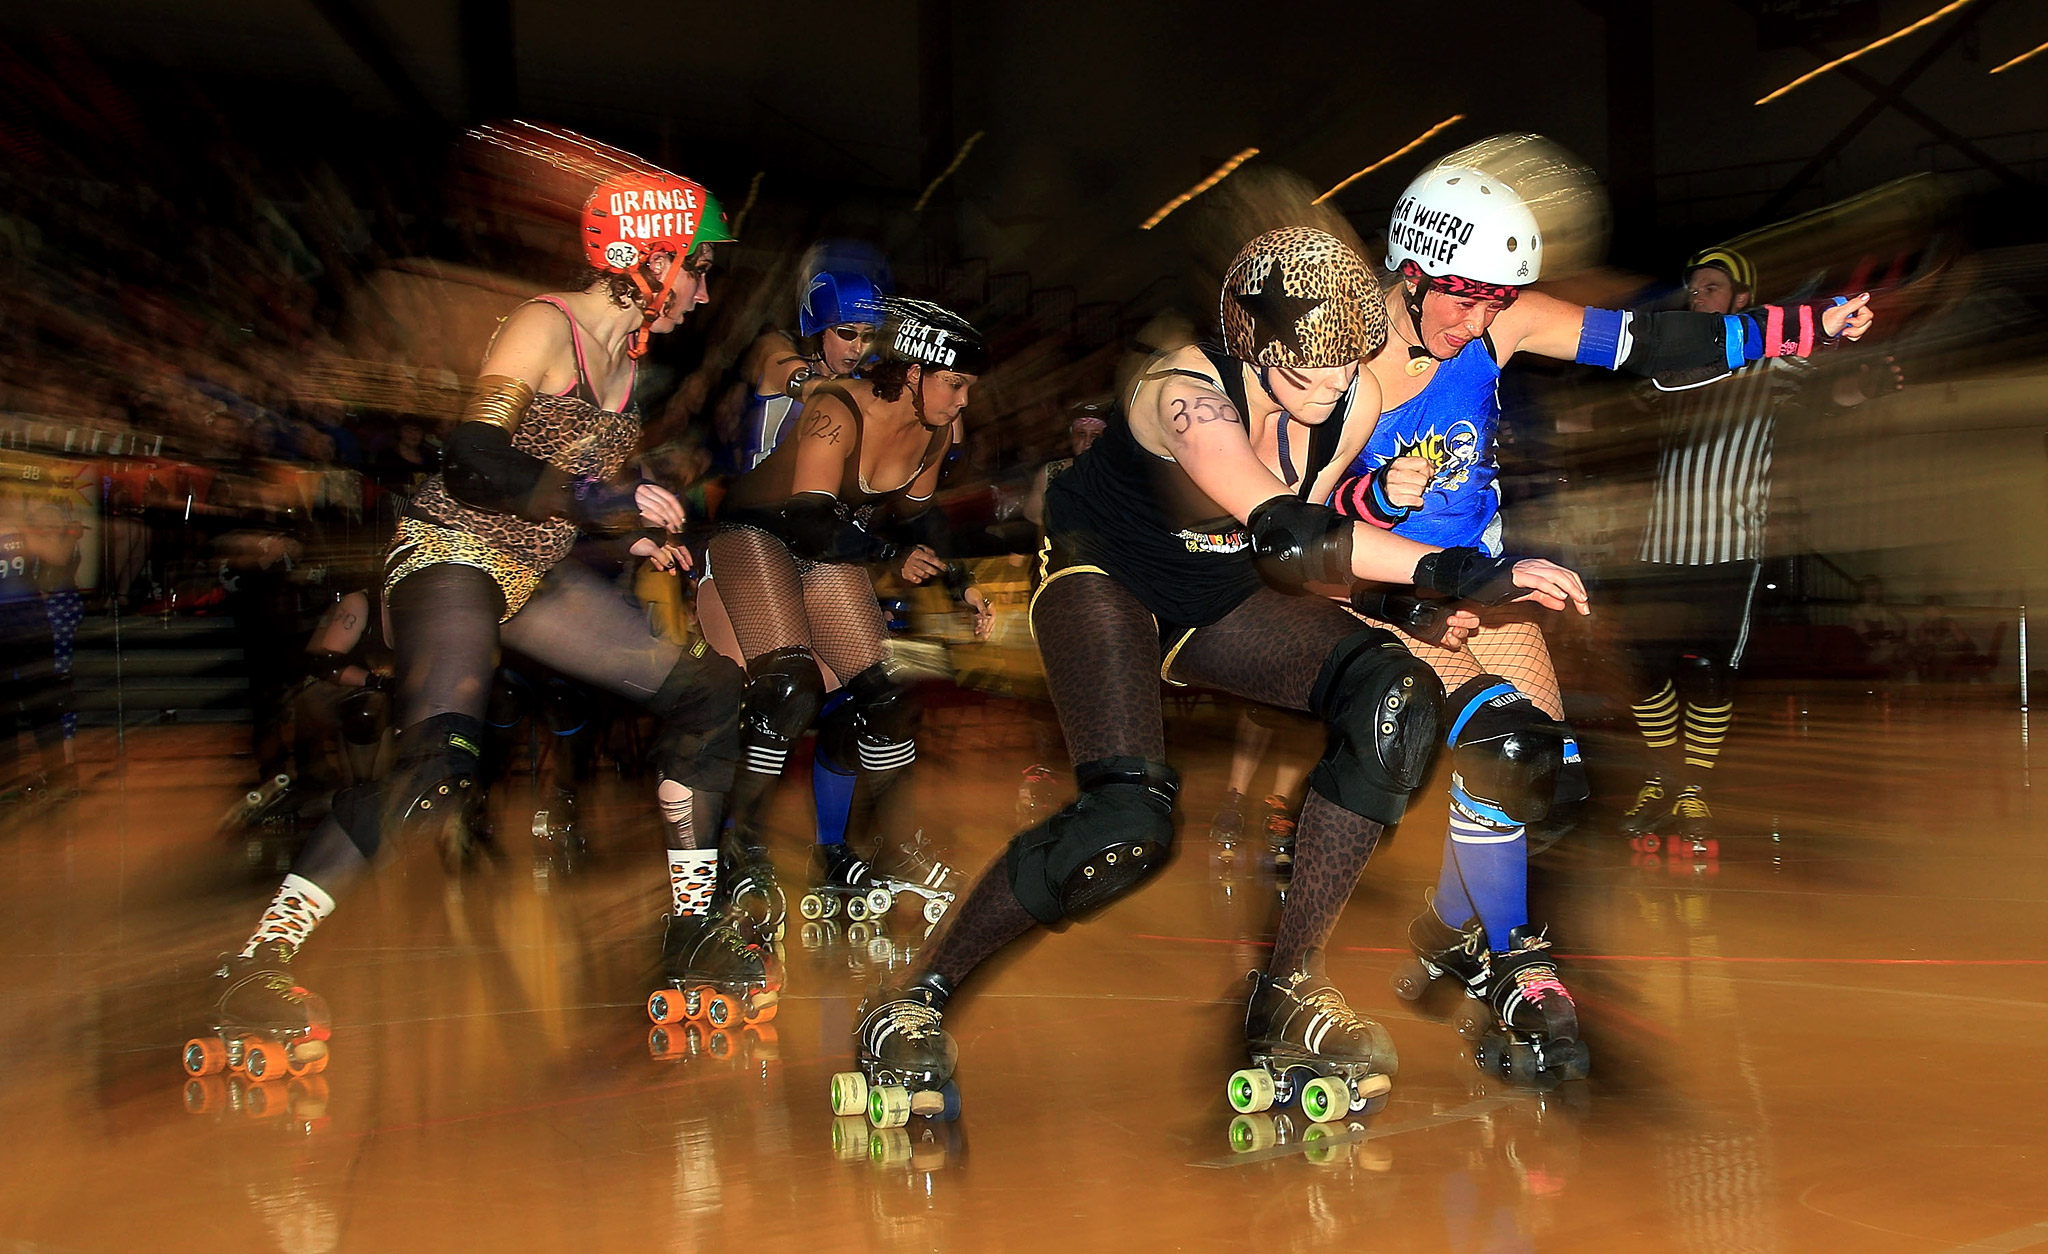 Richter City Roller Derby Season Grand Final